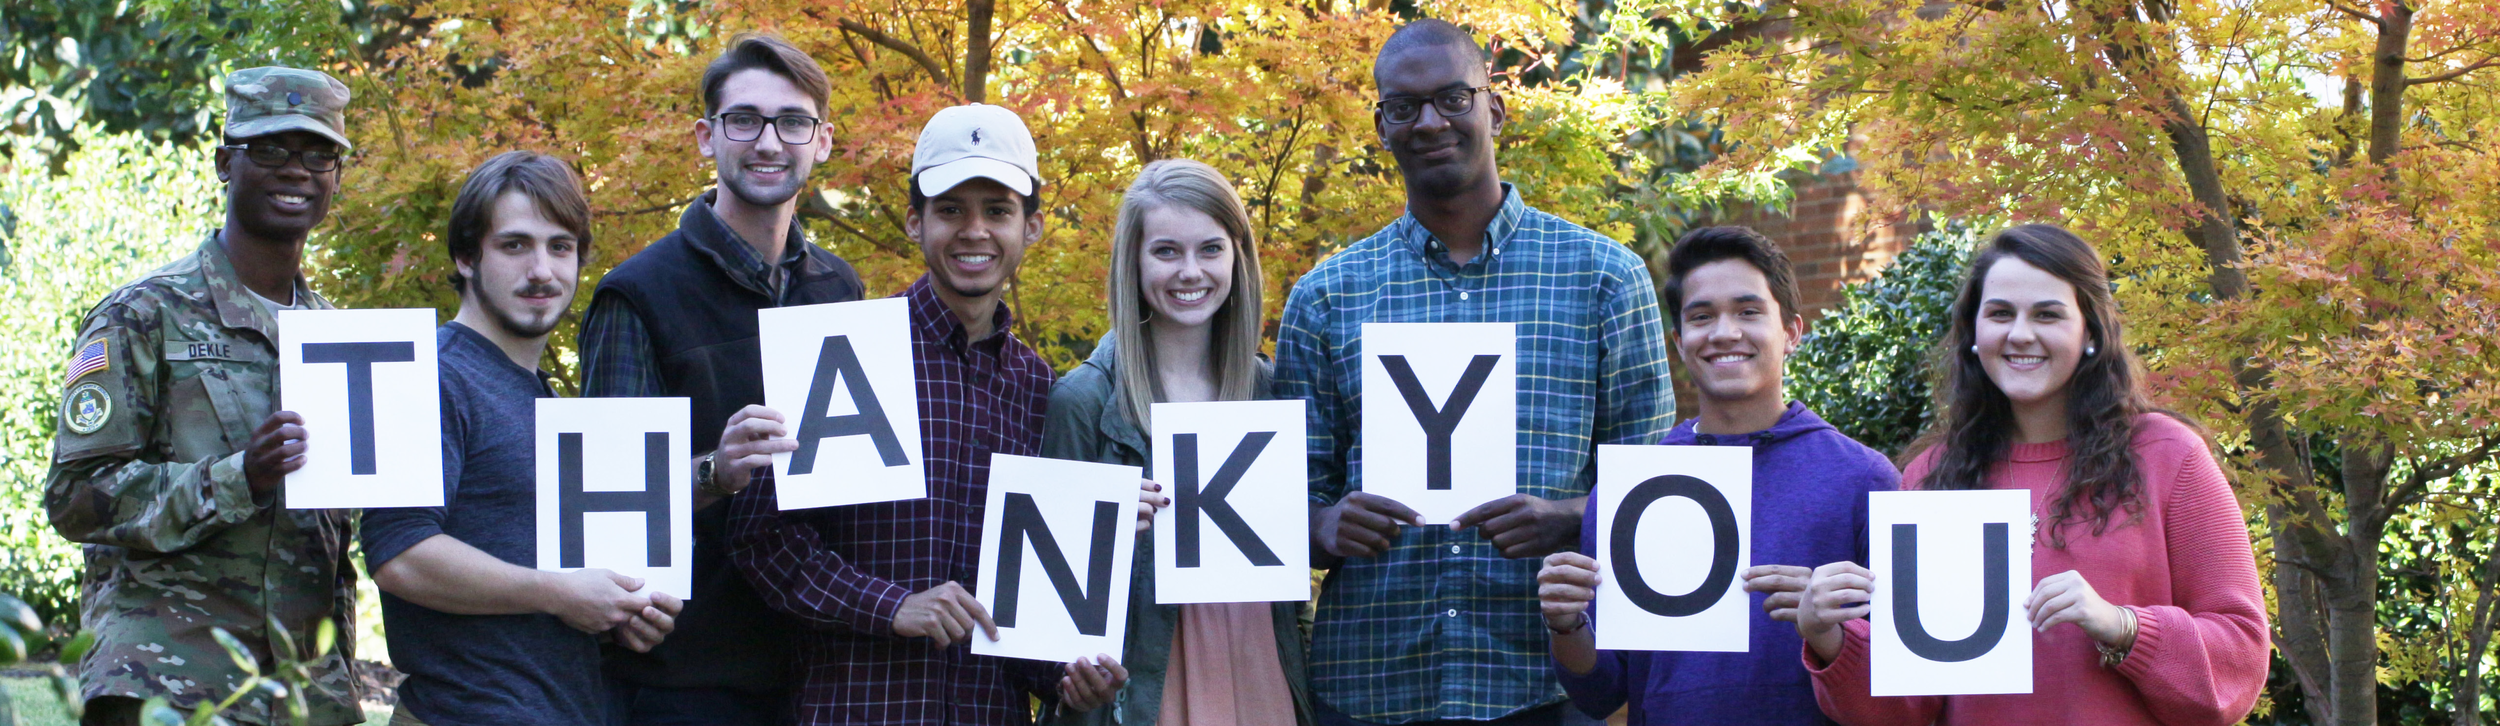 Thank you page banner features students holding up letters to spell out the words 'thank you'.